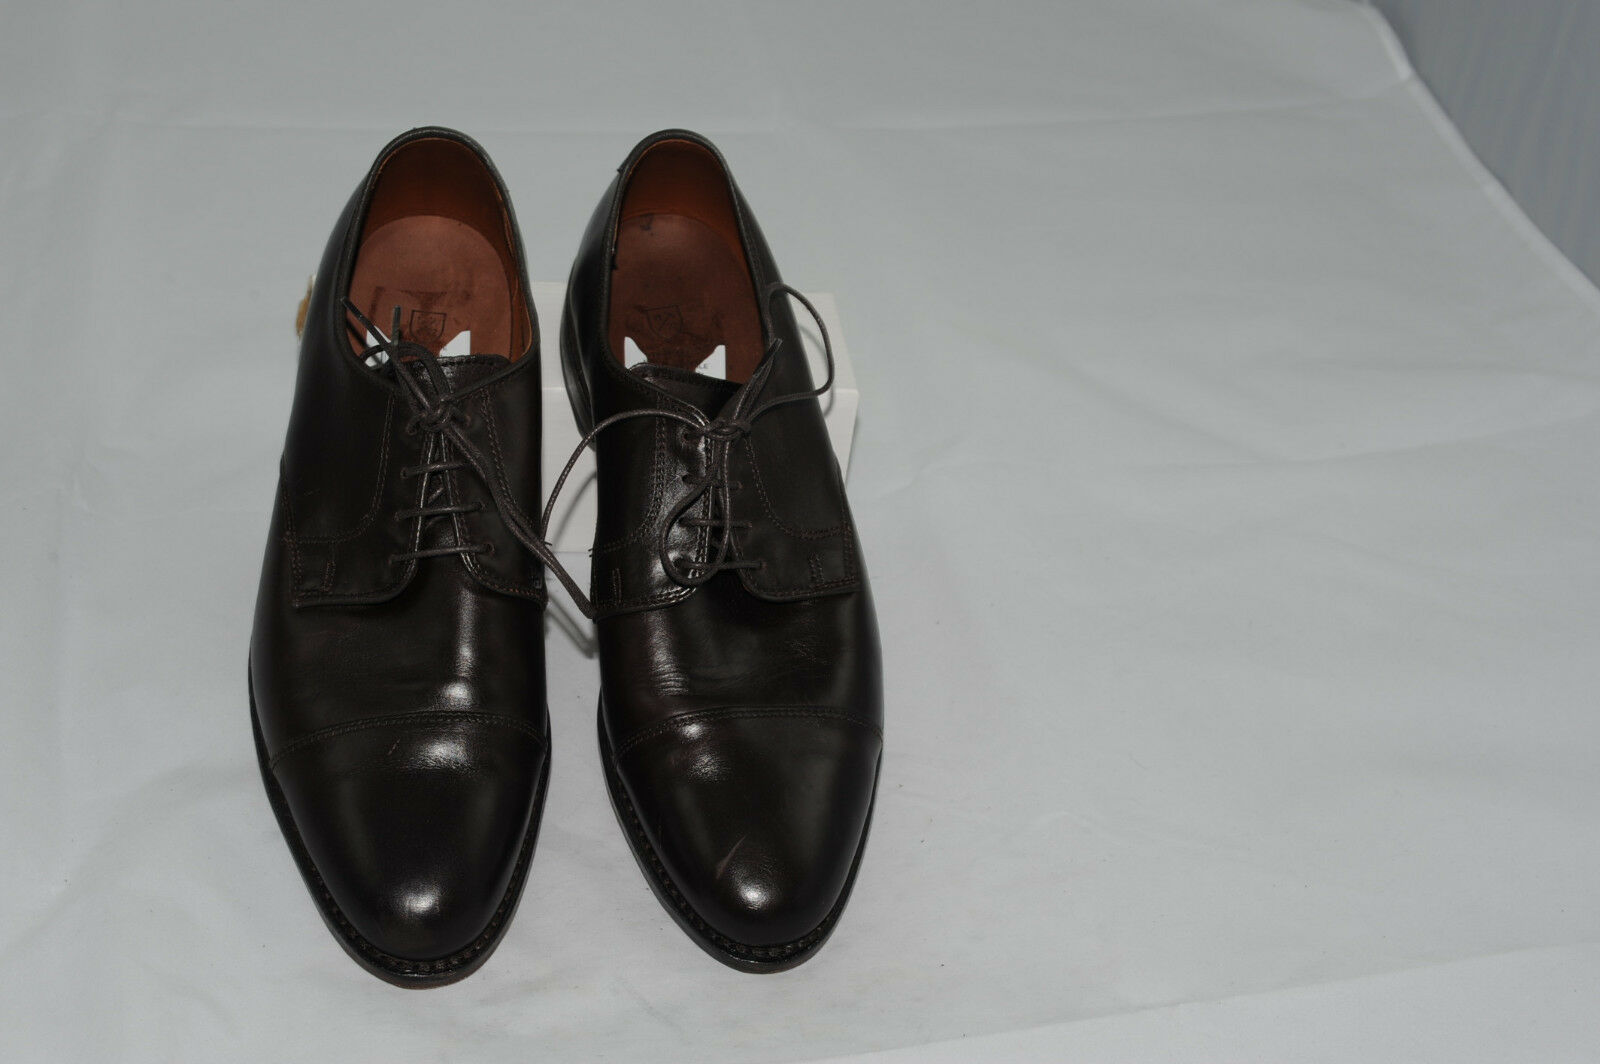 Allen Edmonds Riverside Men's Cap Toe Oxford Dress Leather shoes 10 D